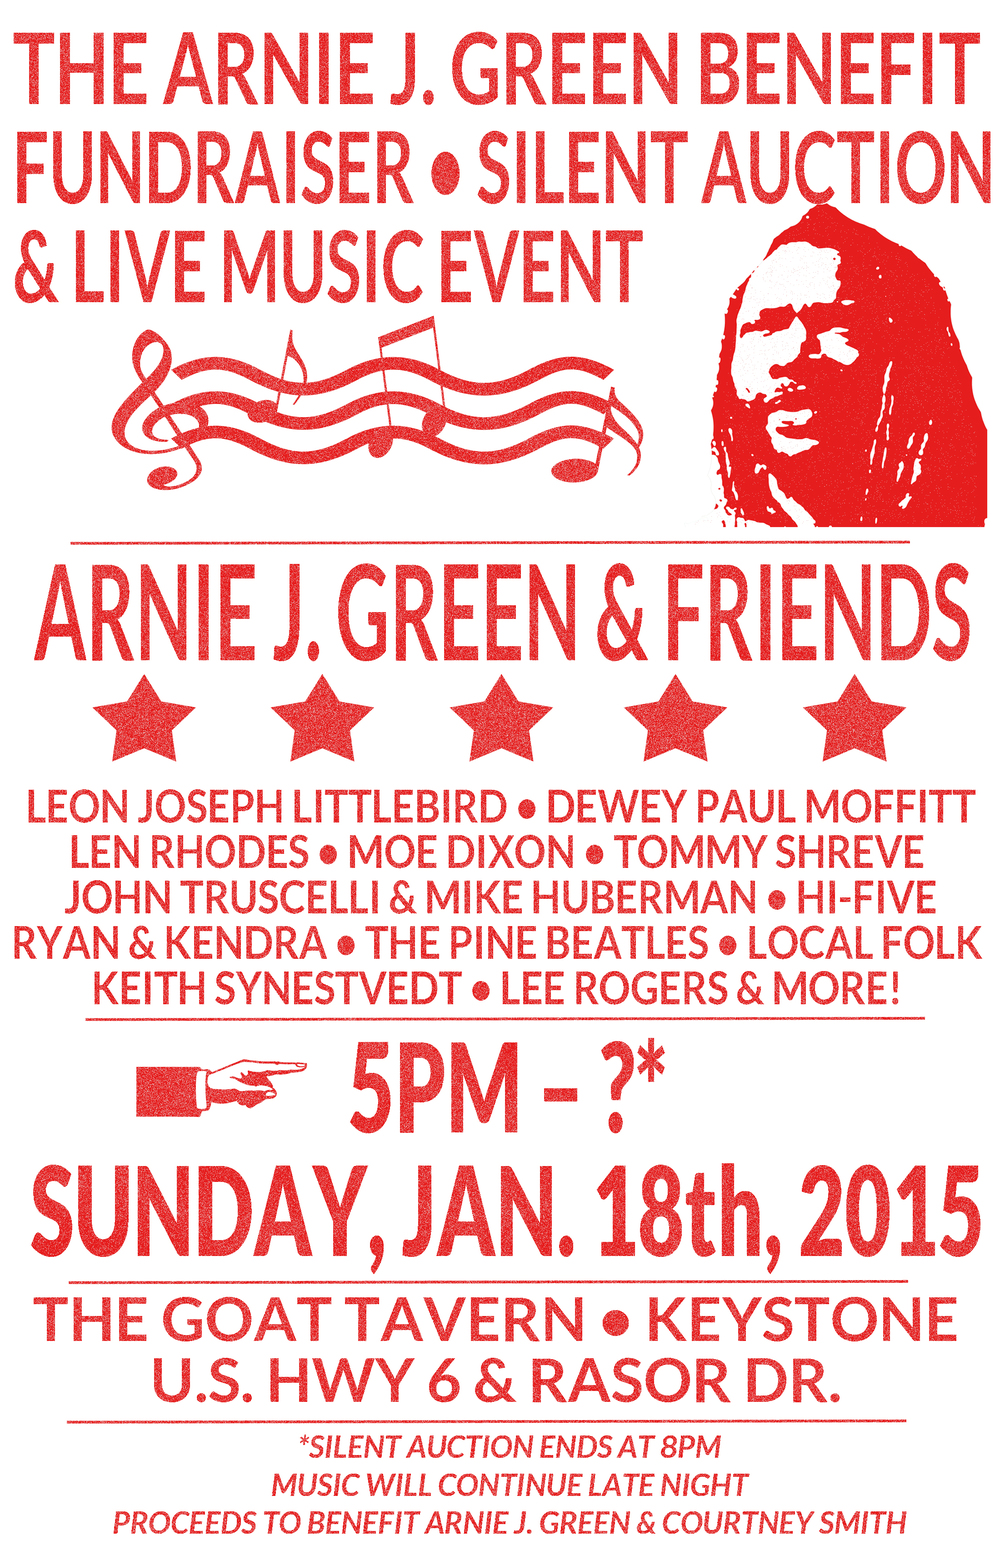 ARNIE-J-GREEN_2015benefit-WEB.jpg